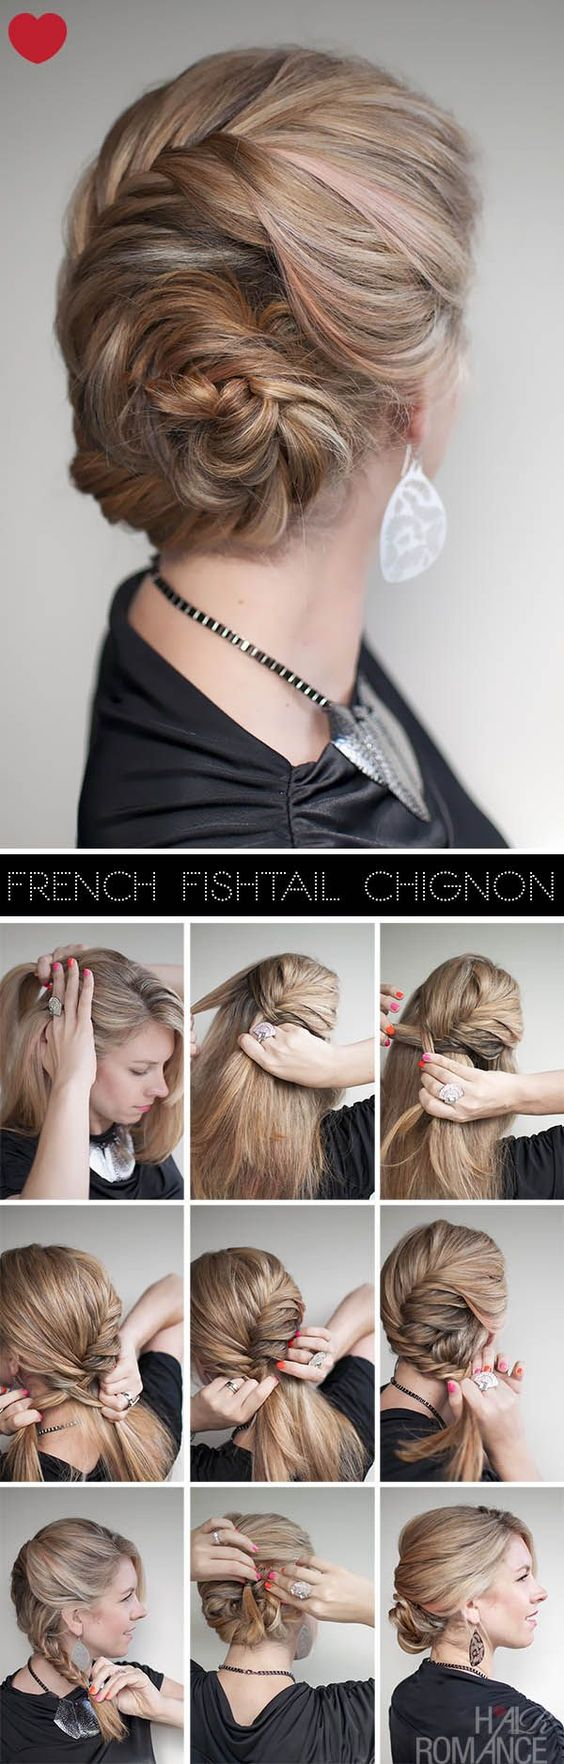 DIY French Fishtail Chignon, I want to try this sometime!